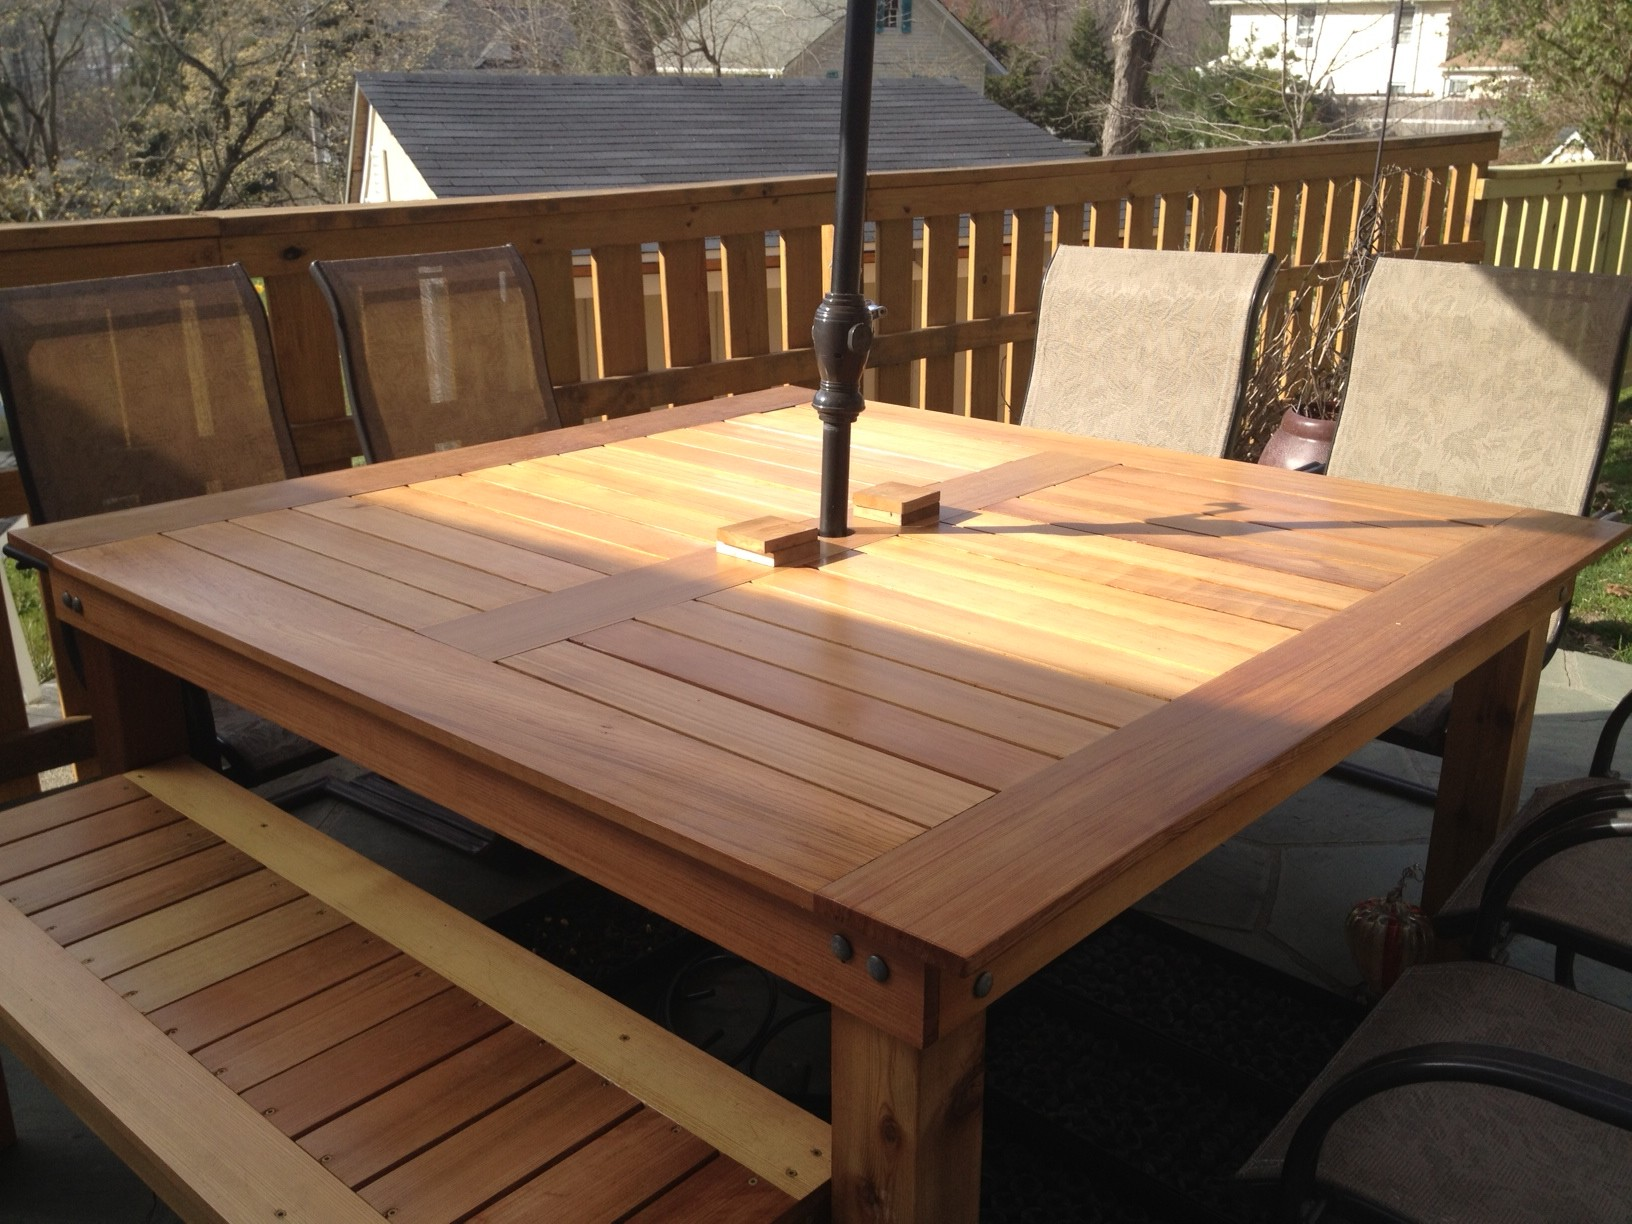 Simple Square Cedar Outdoor Dining Table | Do It Yourself Home ...